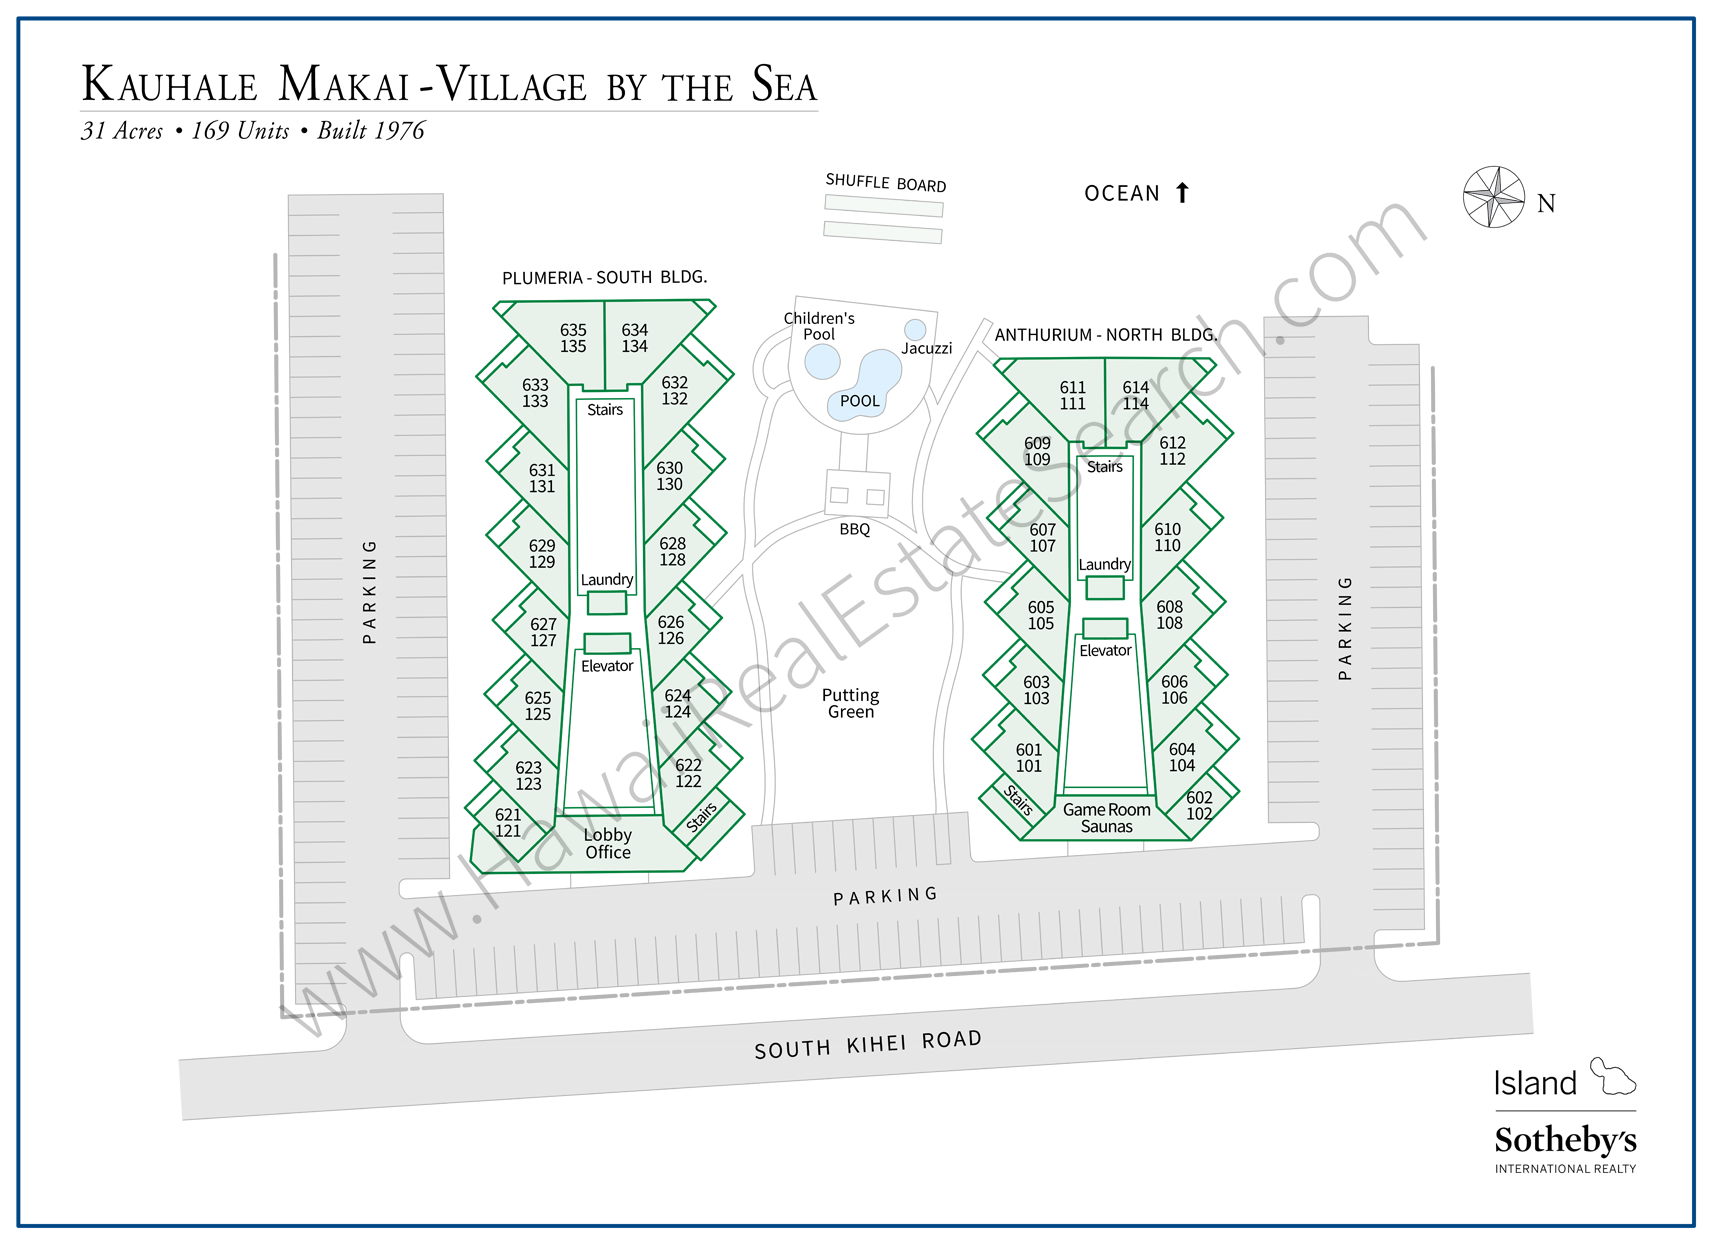 Village by the Sea Map - Kauhale Makai